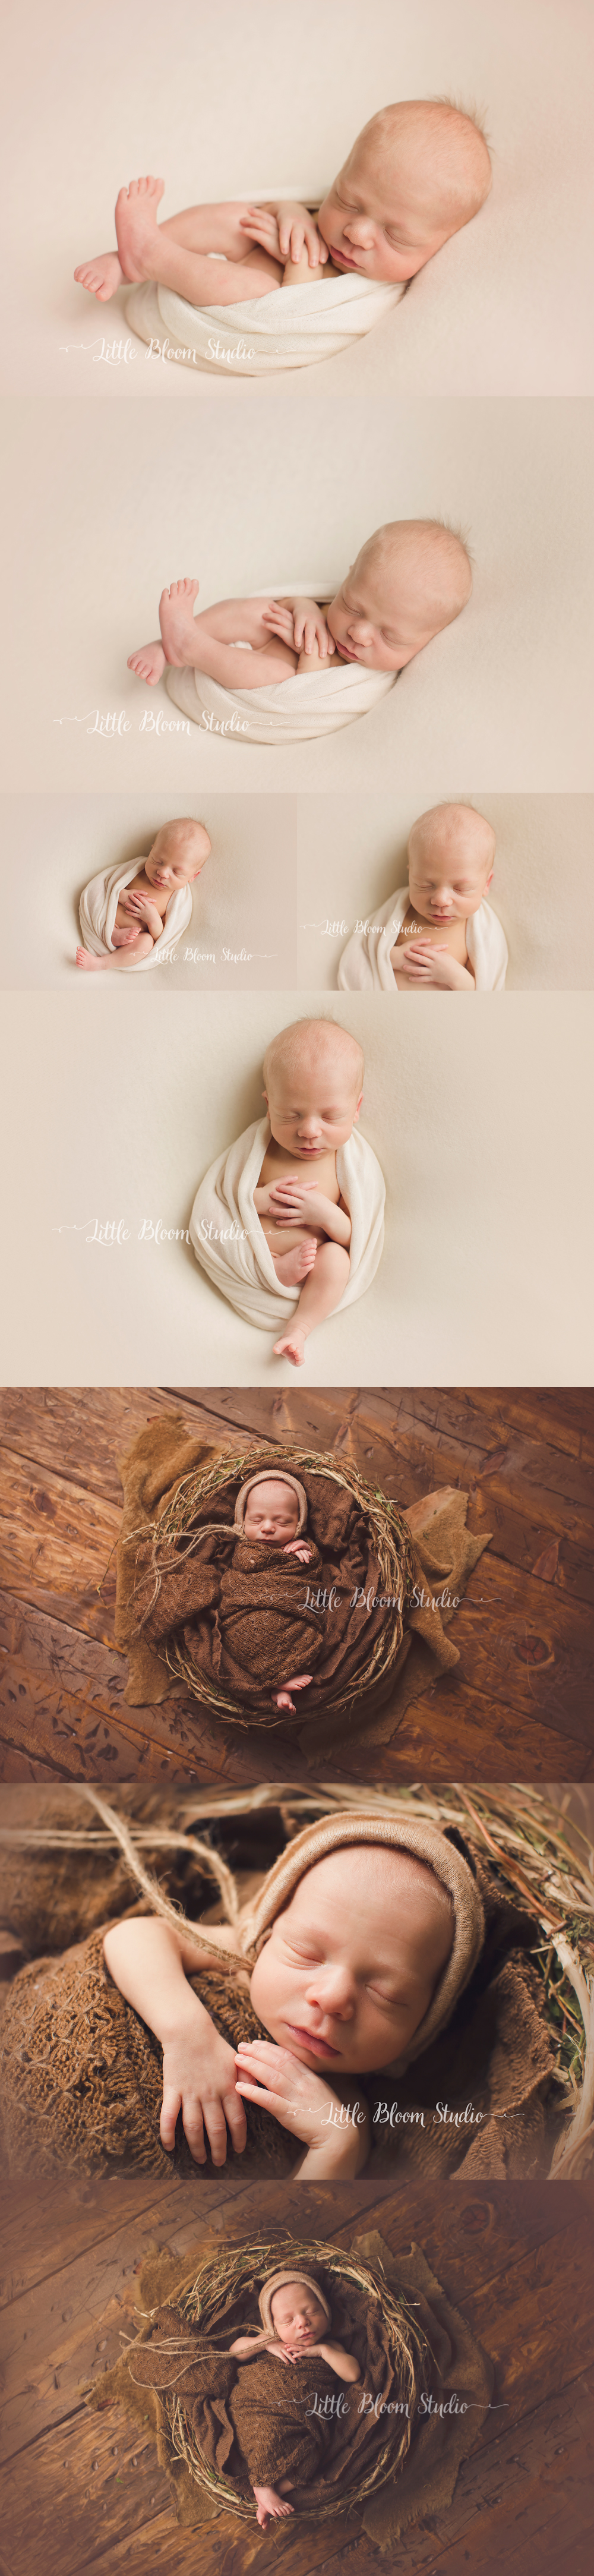 Spartanburg_newborn_photographer.jpg